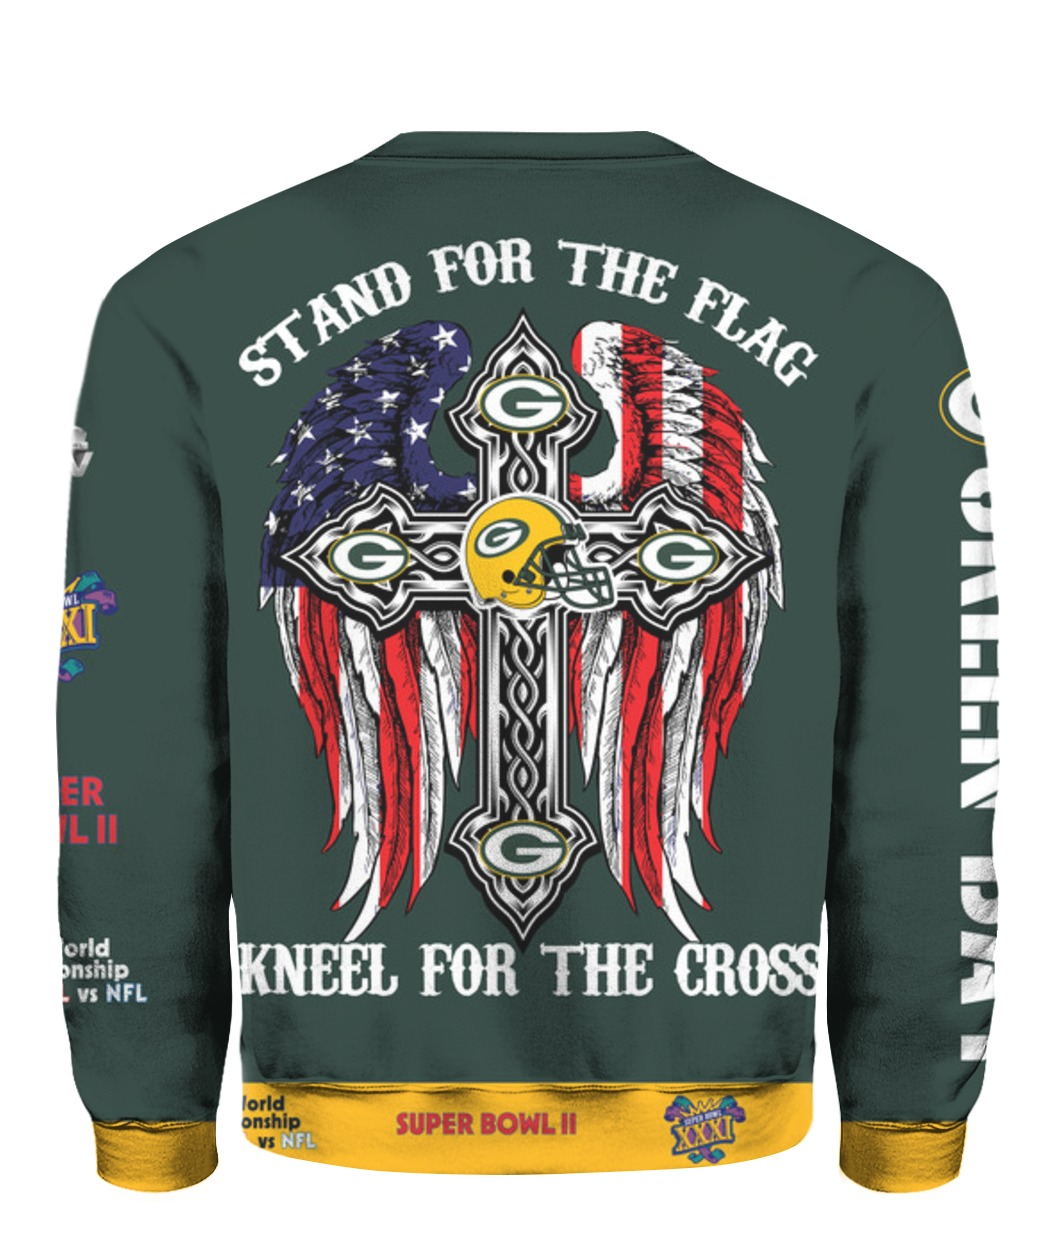 Stand for the flag kneel for the cross green bay packers all over print sweatshirt - back